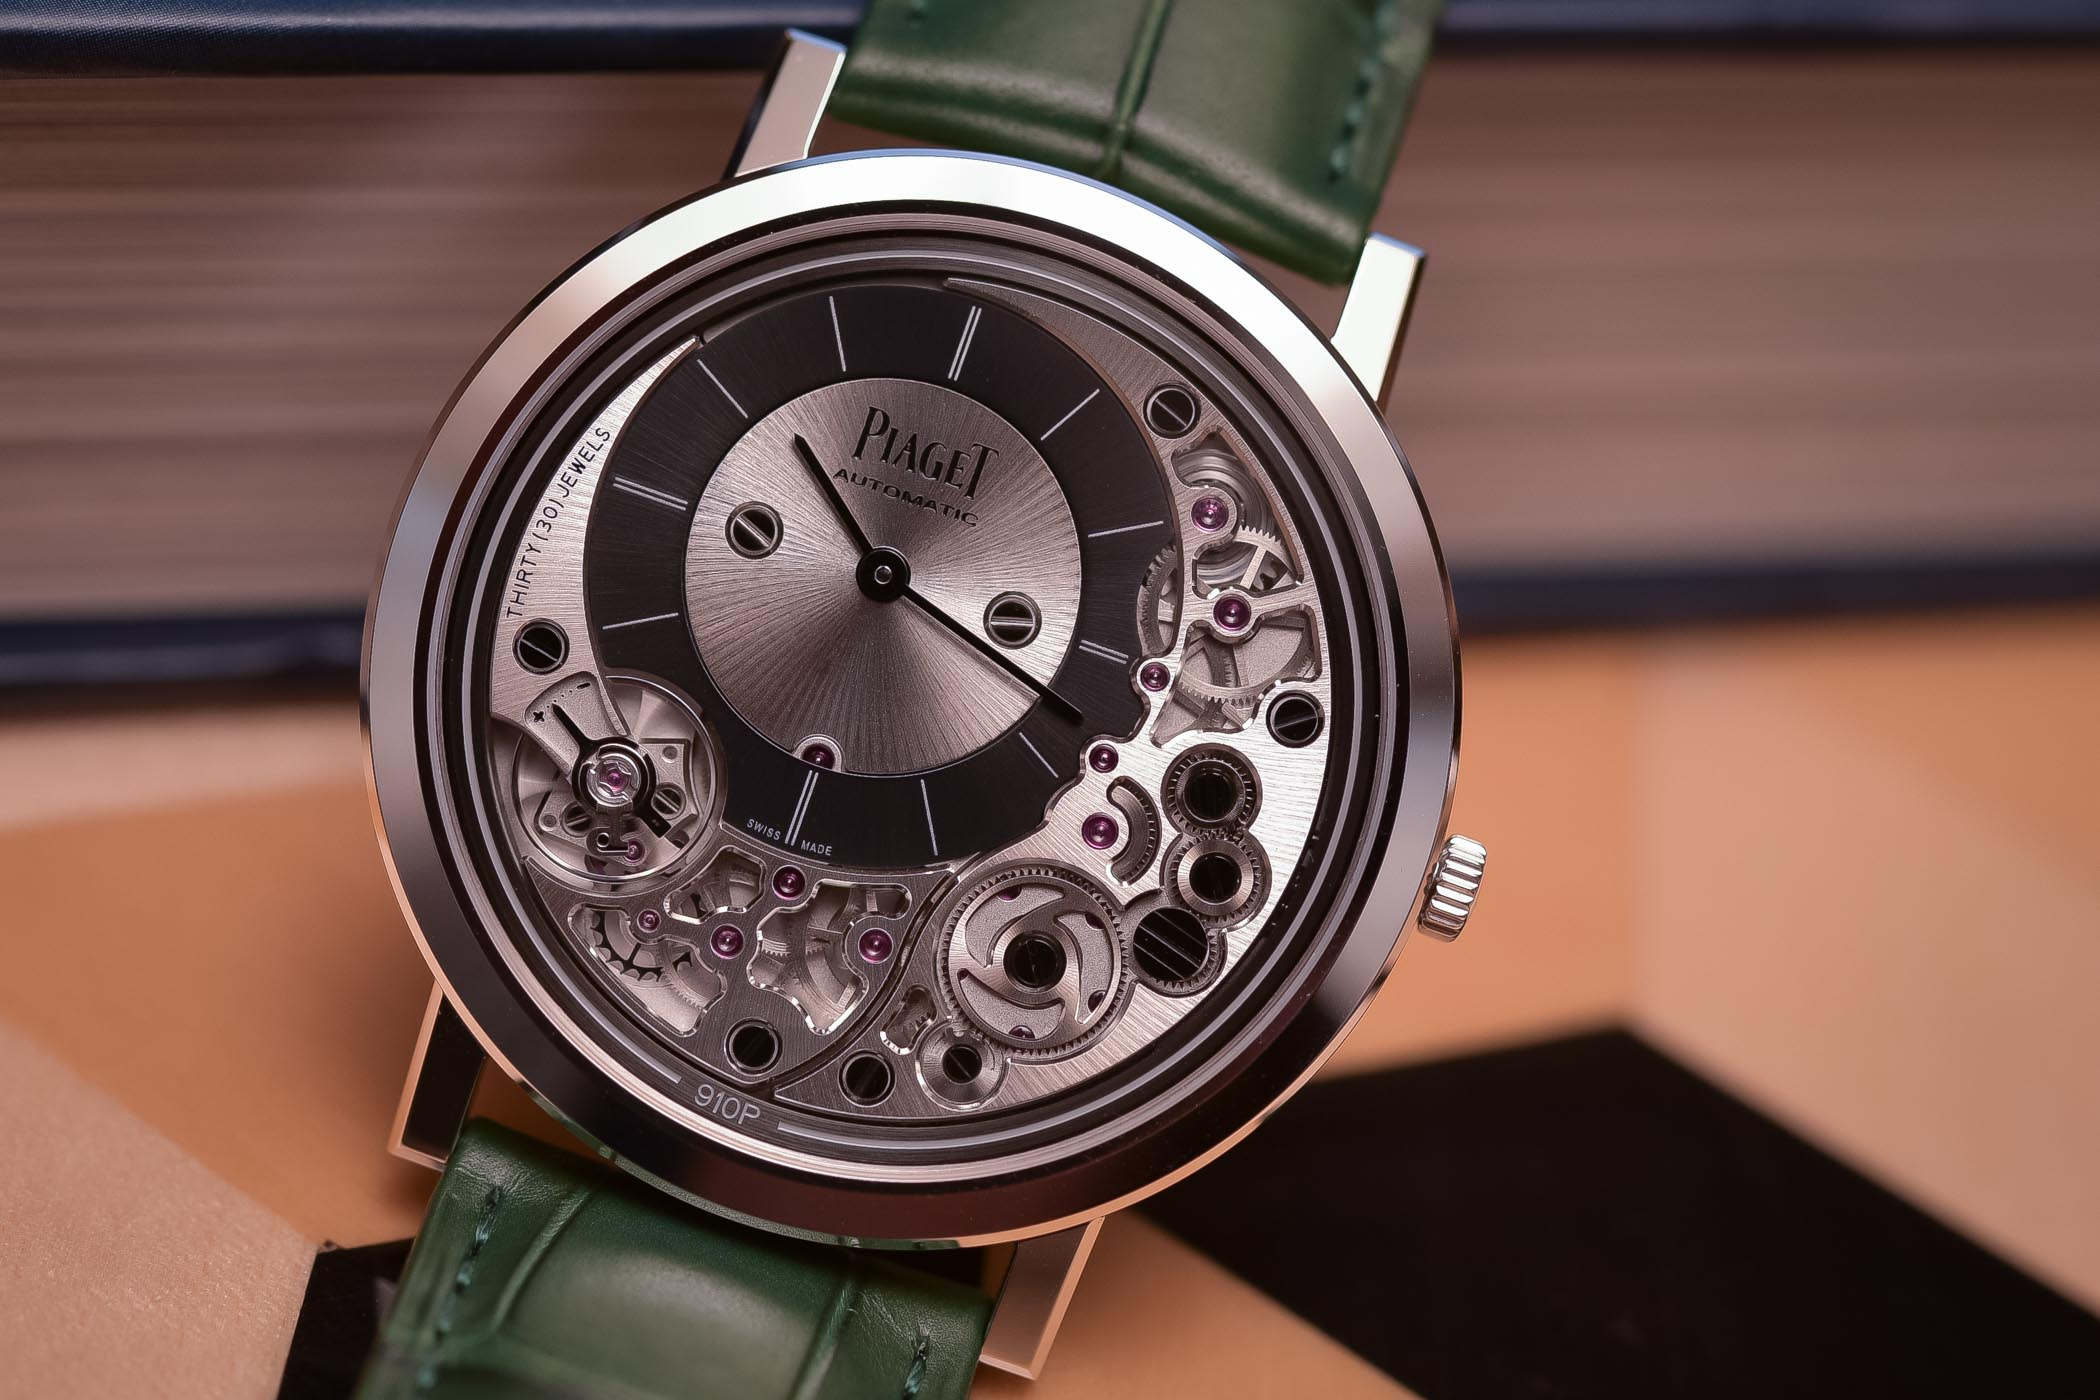 Piaget Altiplano Ultimate Automatic 910P - Thinnest Automatic Watch